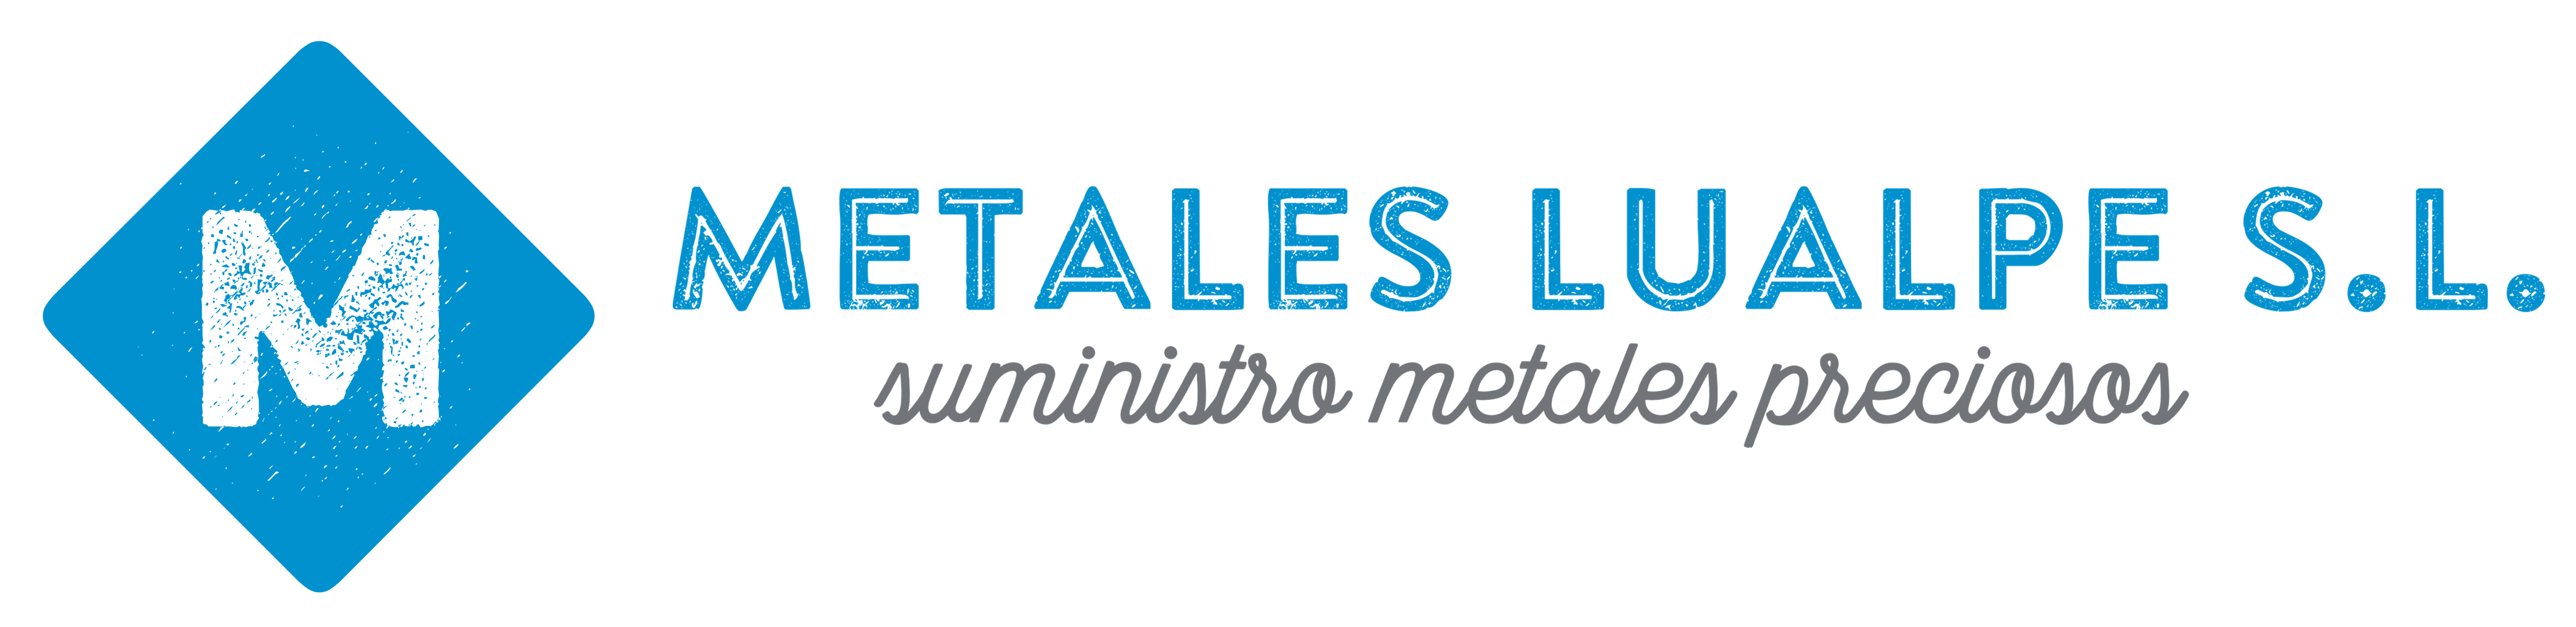 Metales Lualpe S.L.